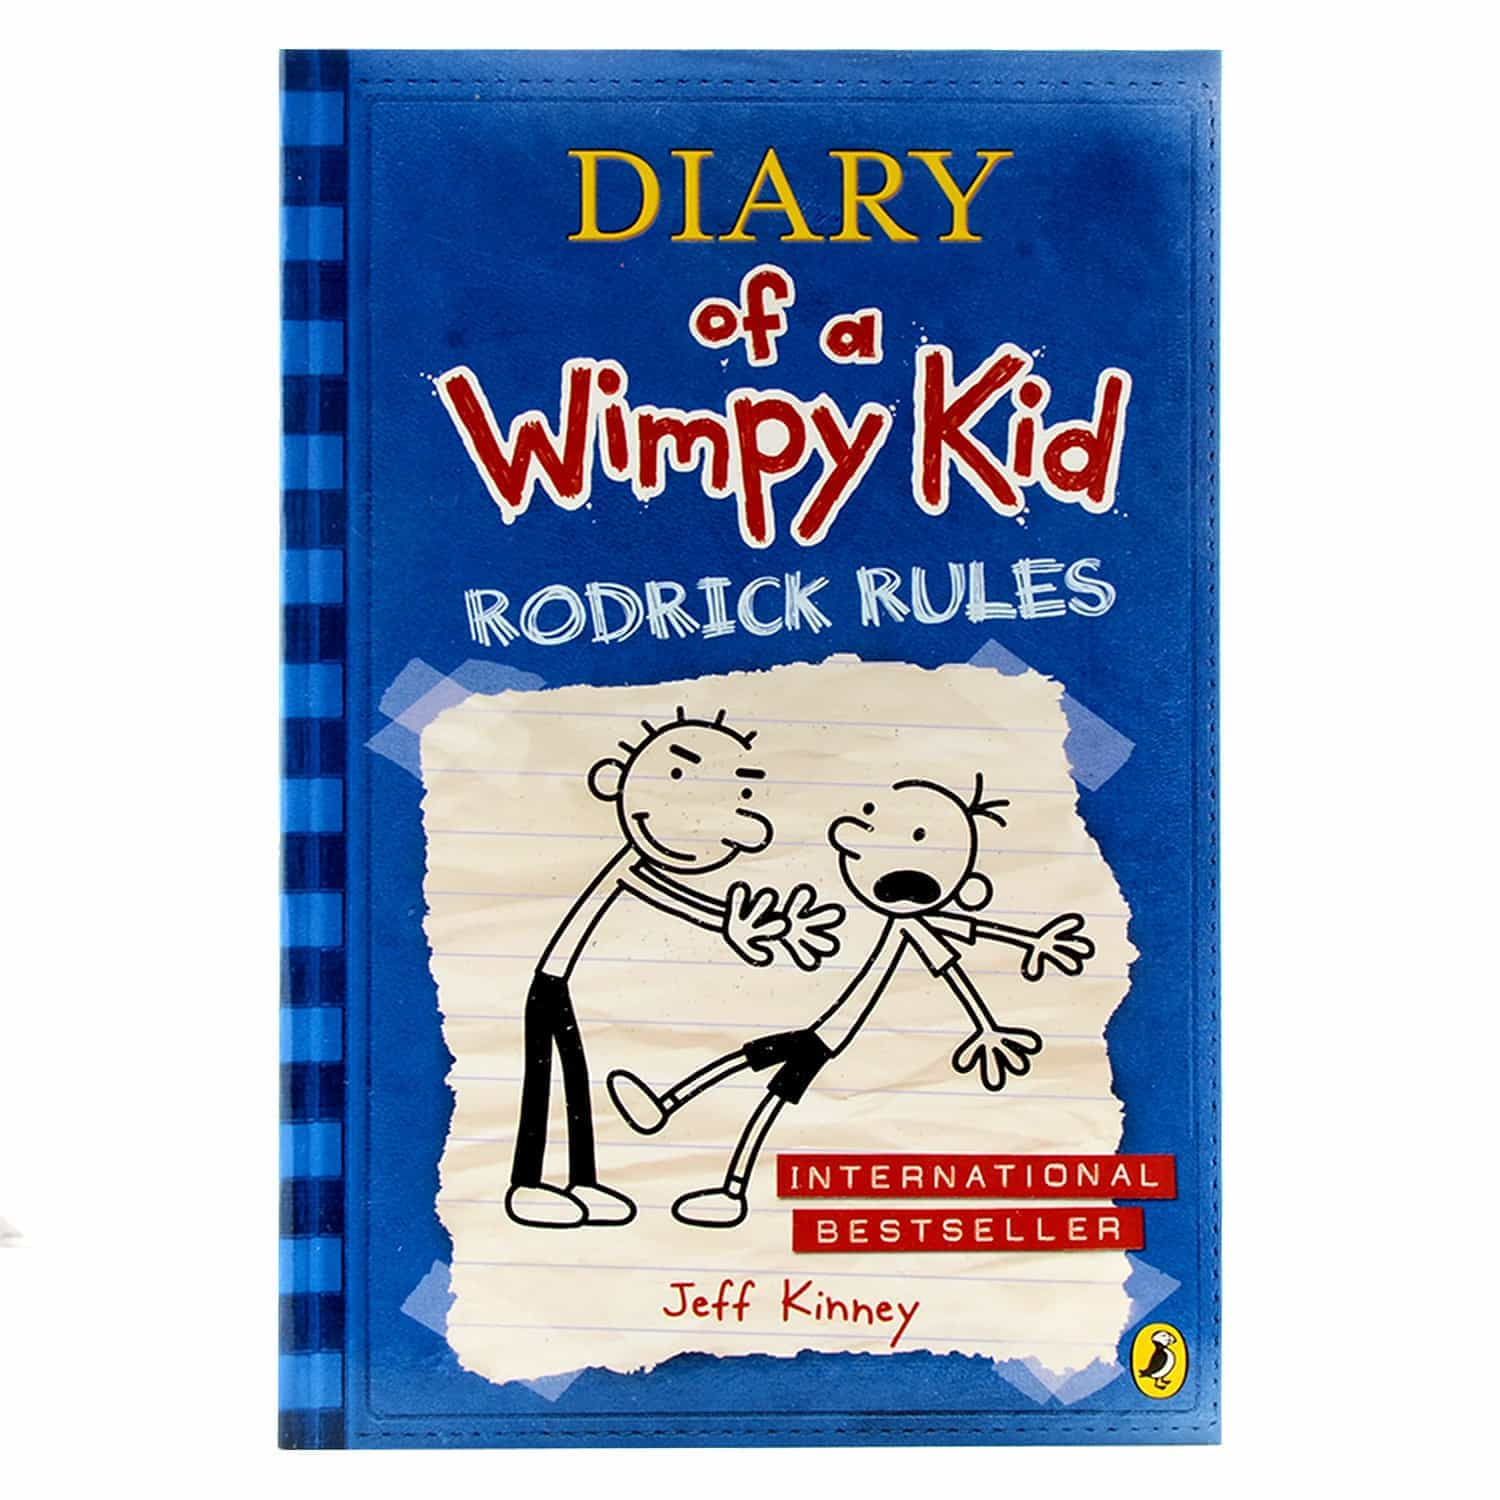 Diary of a Wimpy Kid Series- Rodrick Rules